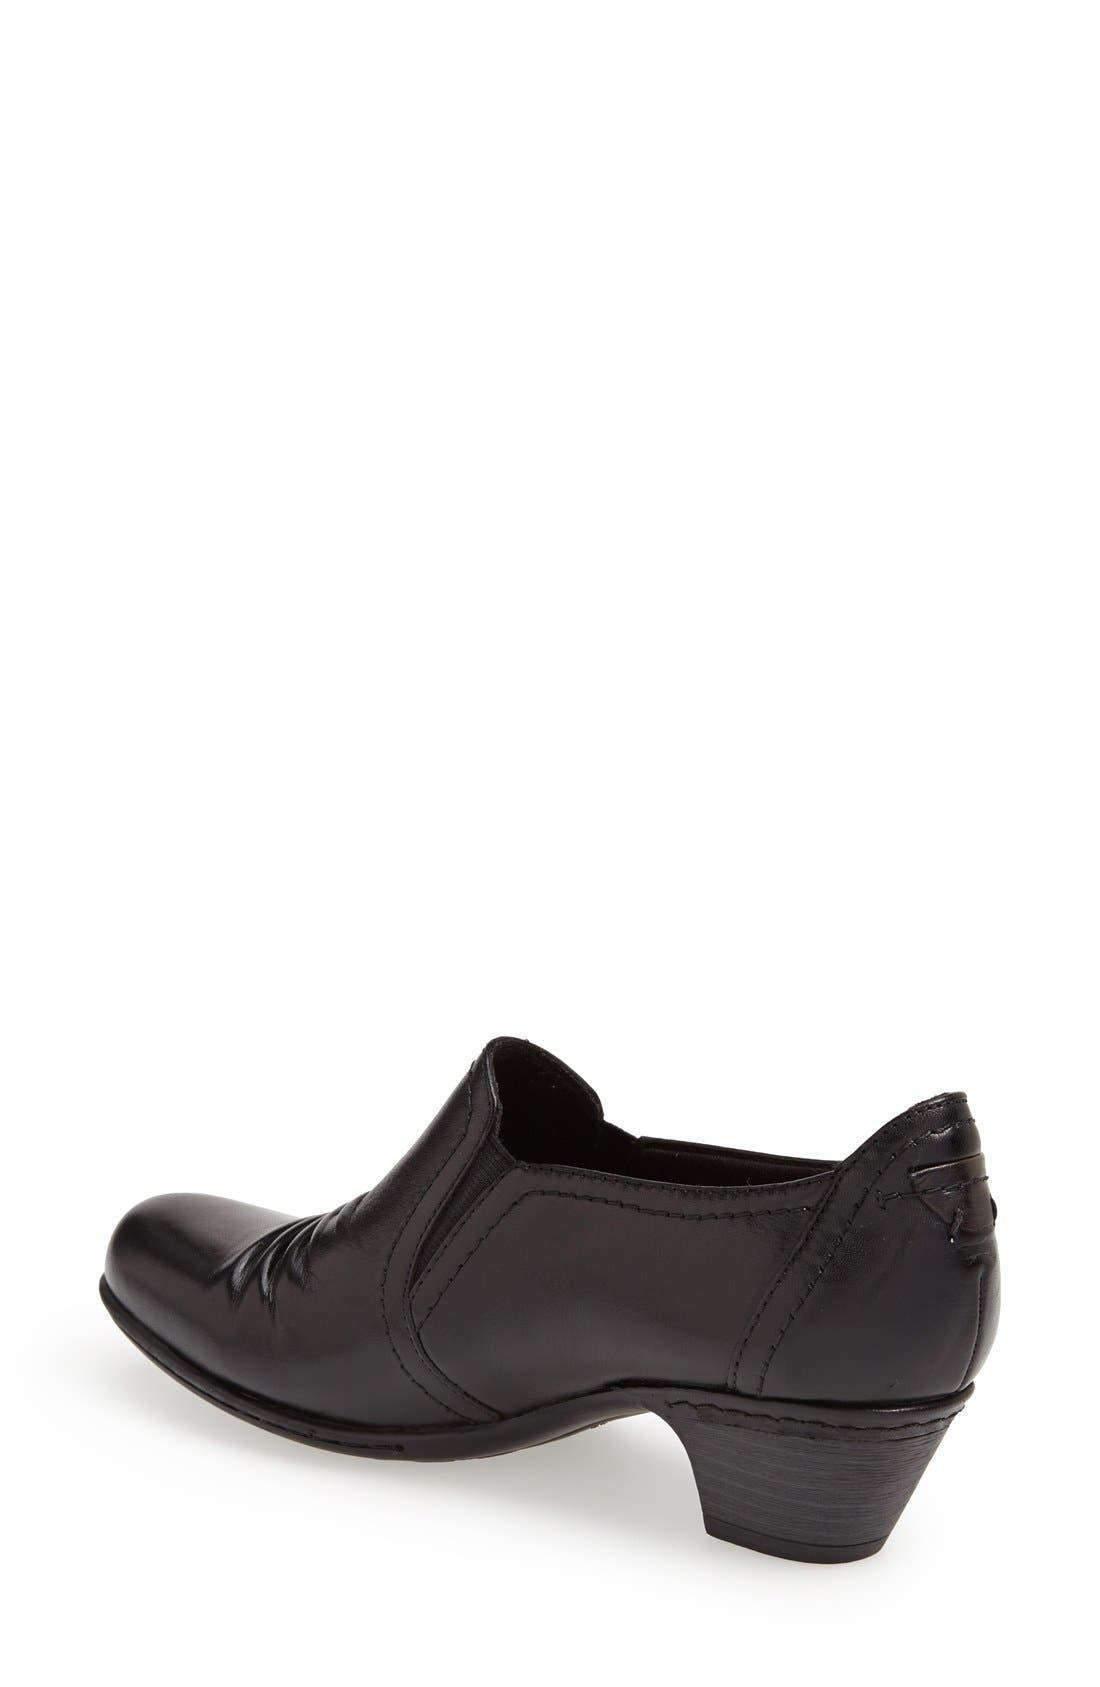 Alternate Image 2  - Rockport Cobb Hill Adele Low Pump (Women)